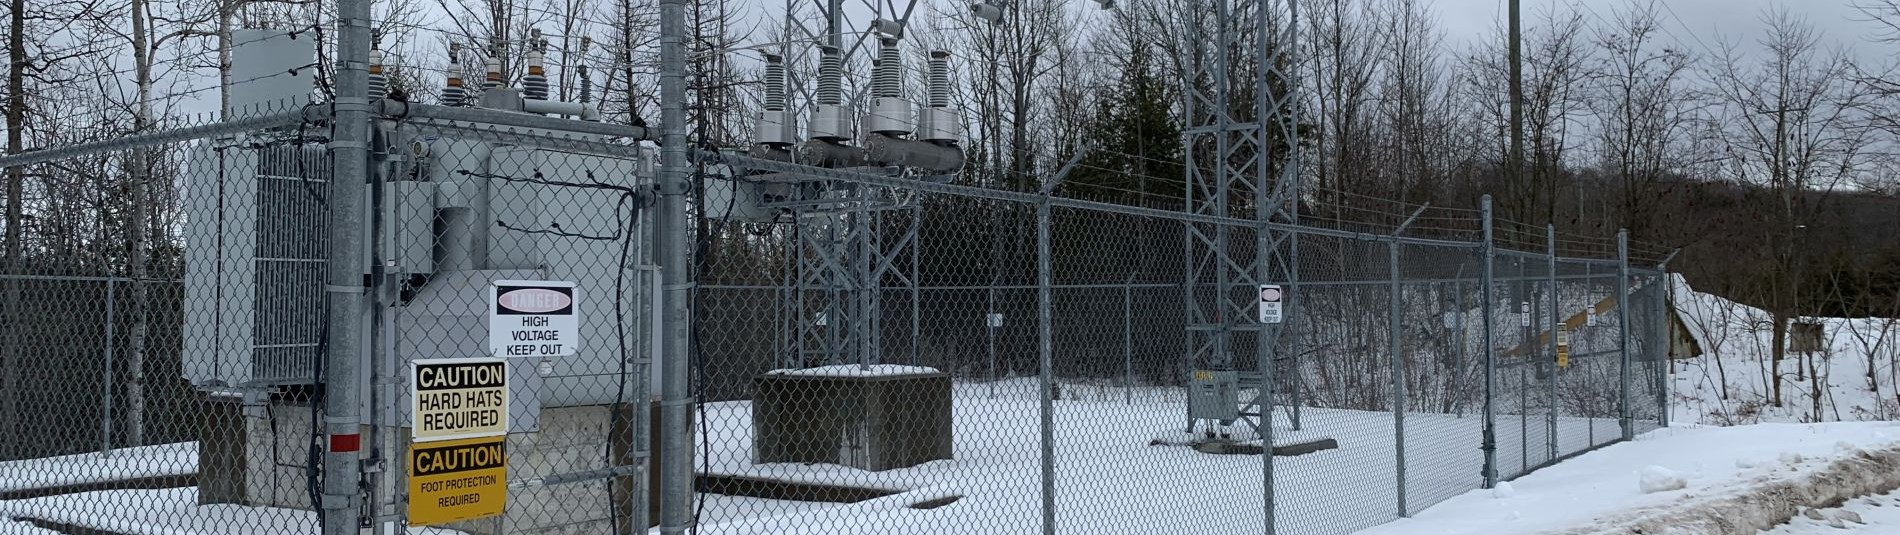 Electrical substation with warning signs